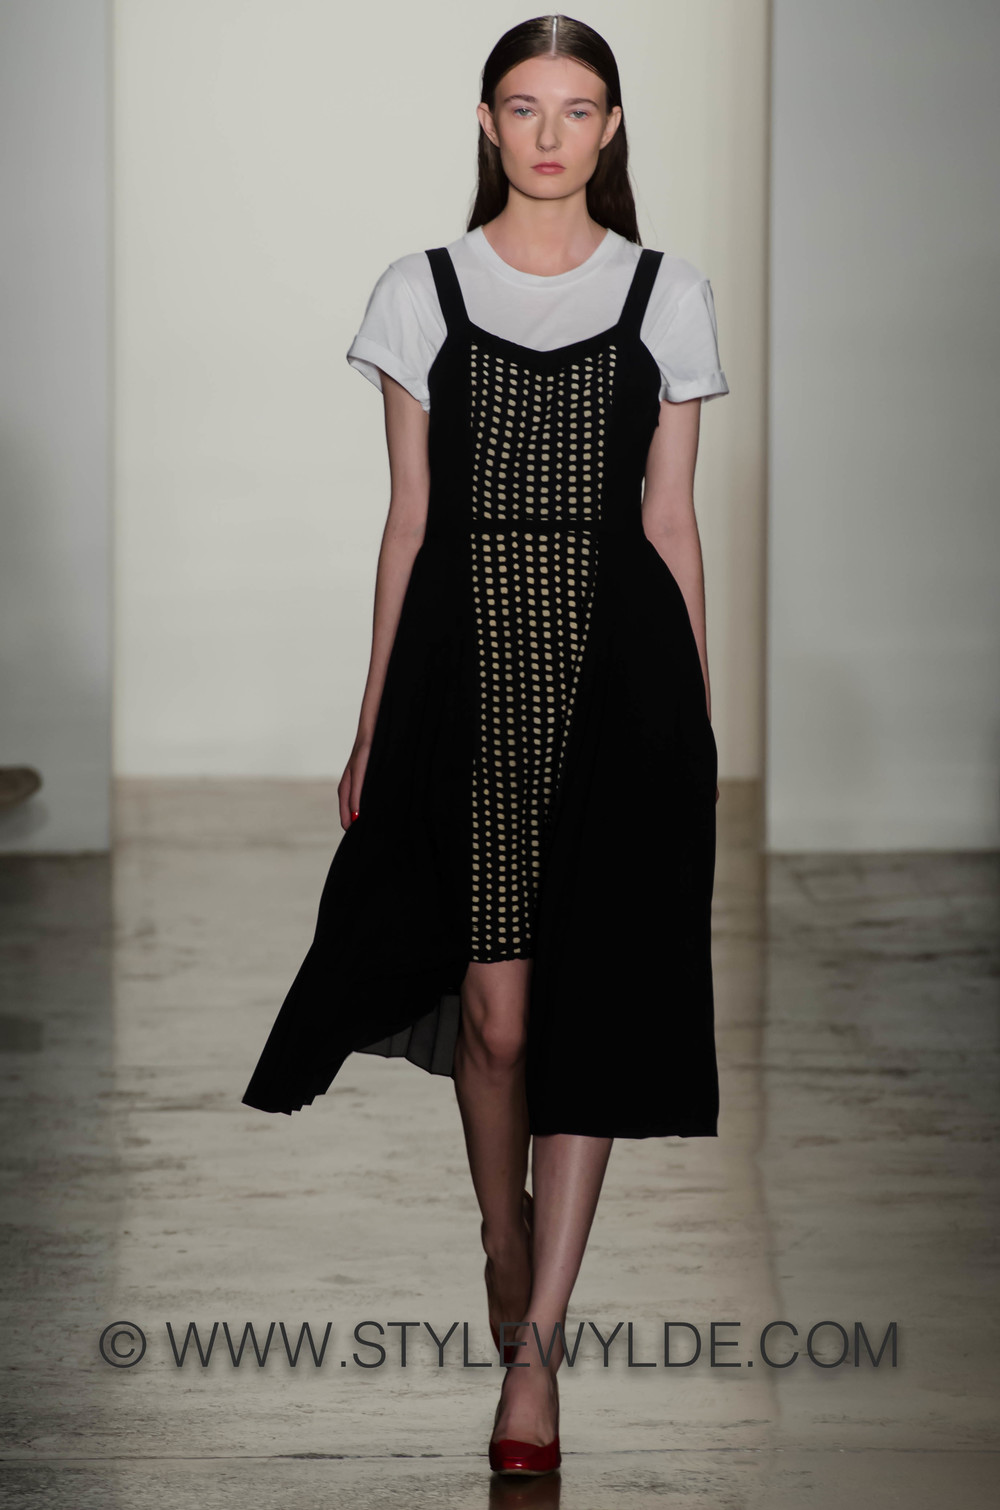 stylewylde_timo_weiland_gallery_ss2014-13.jpg